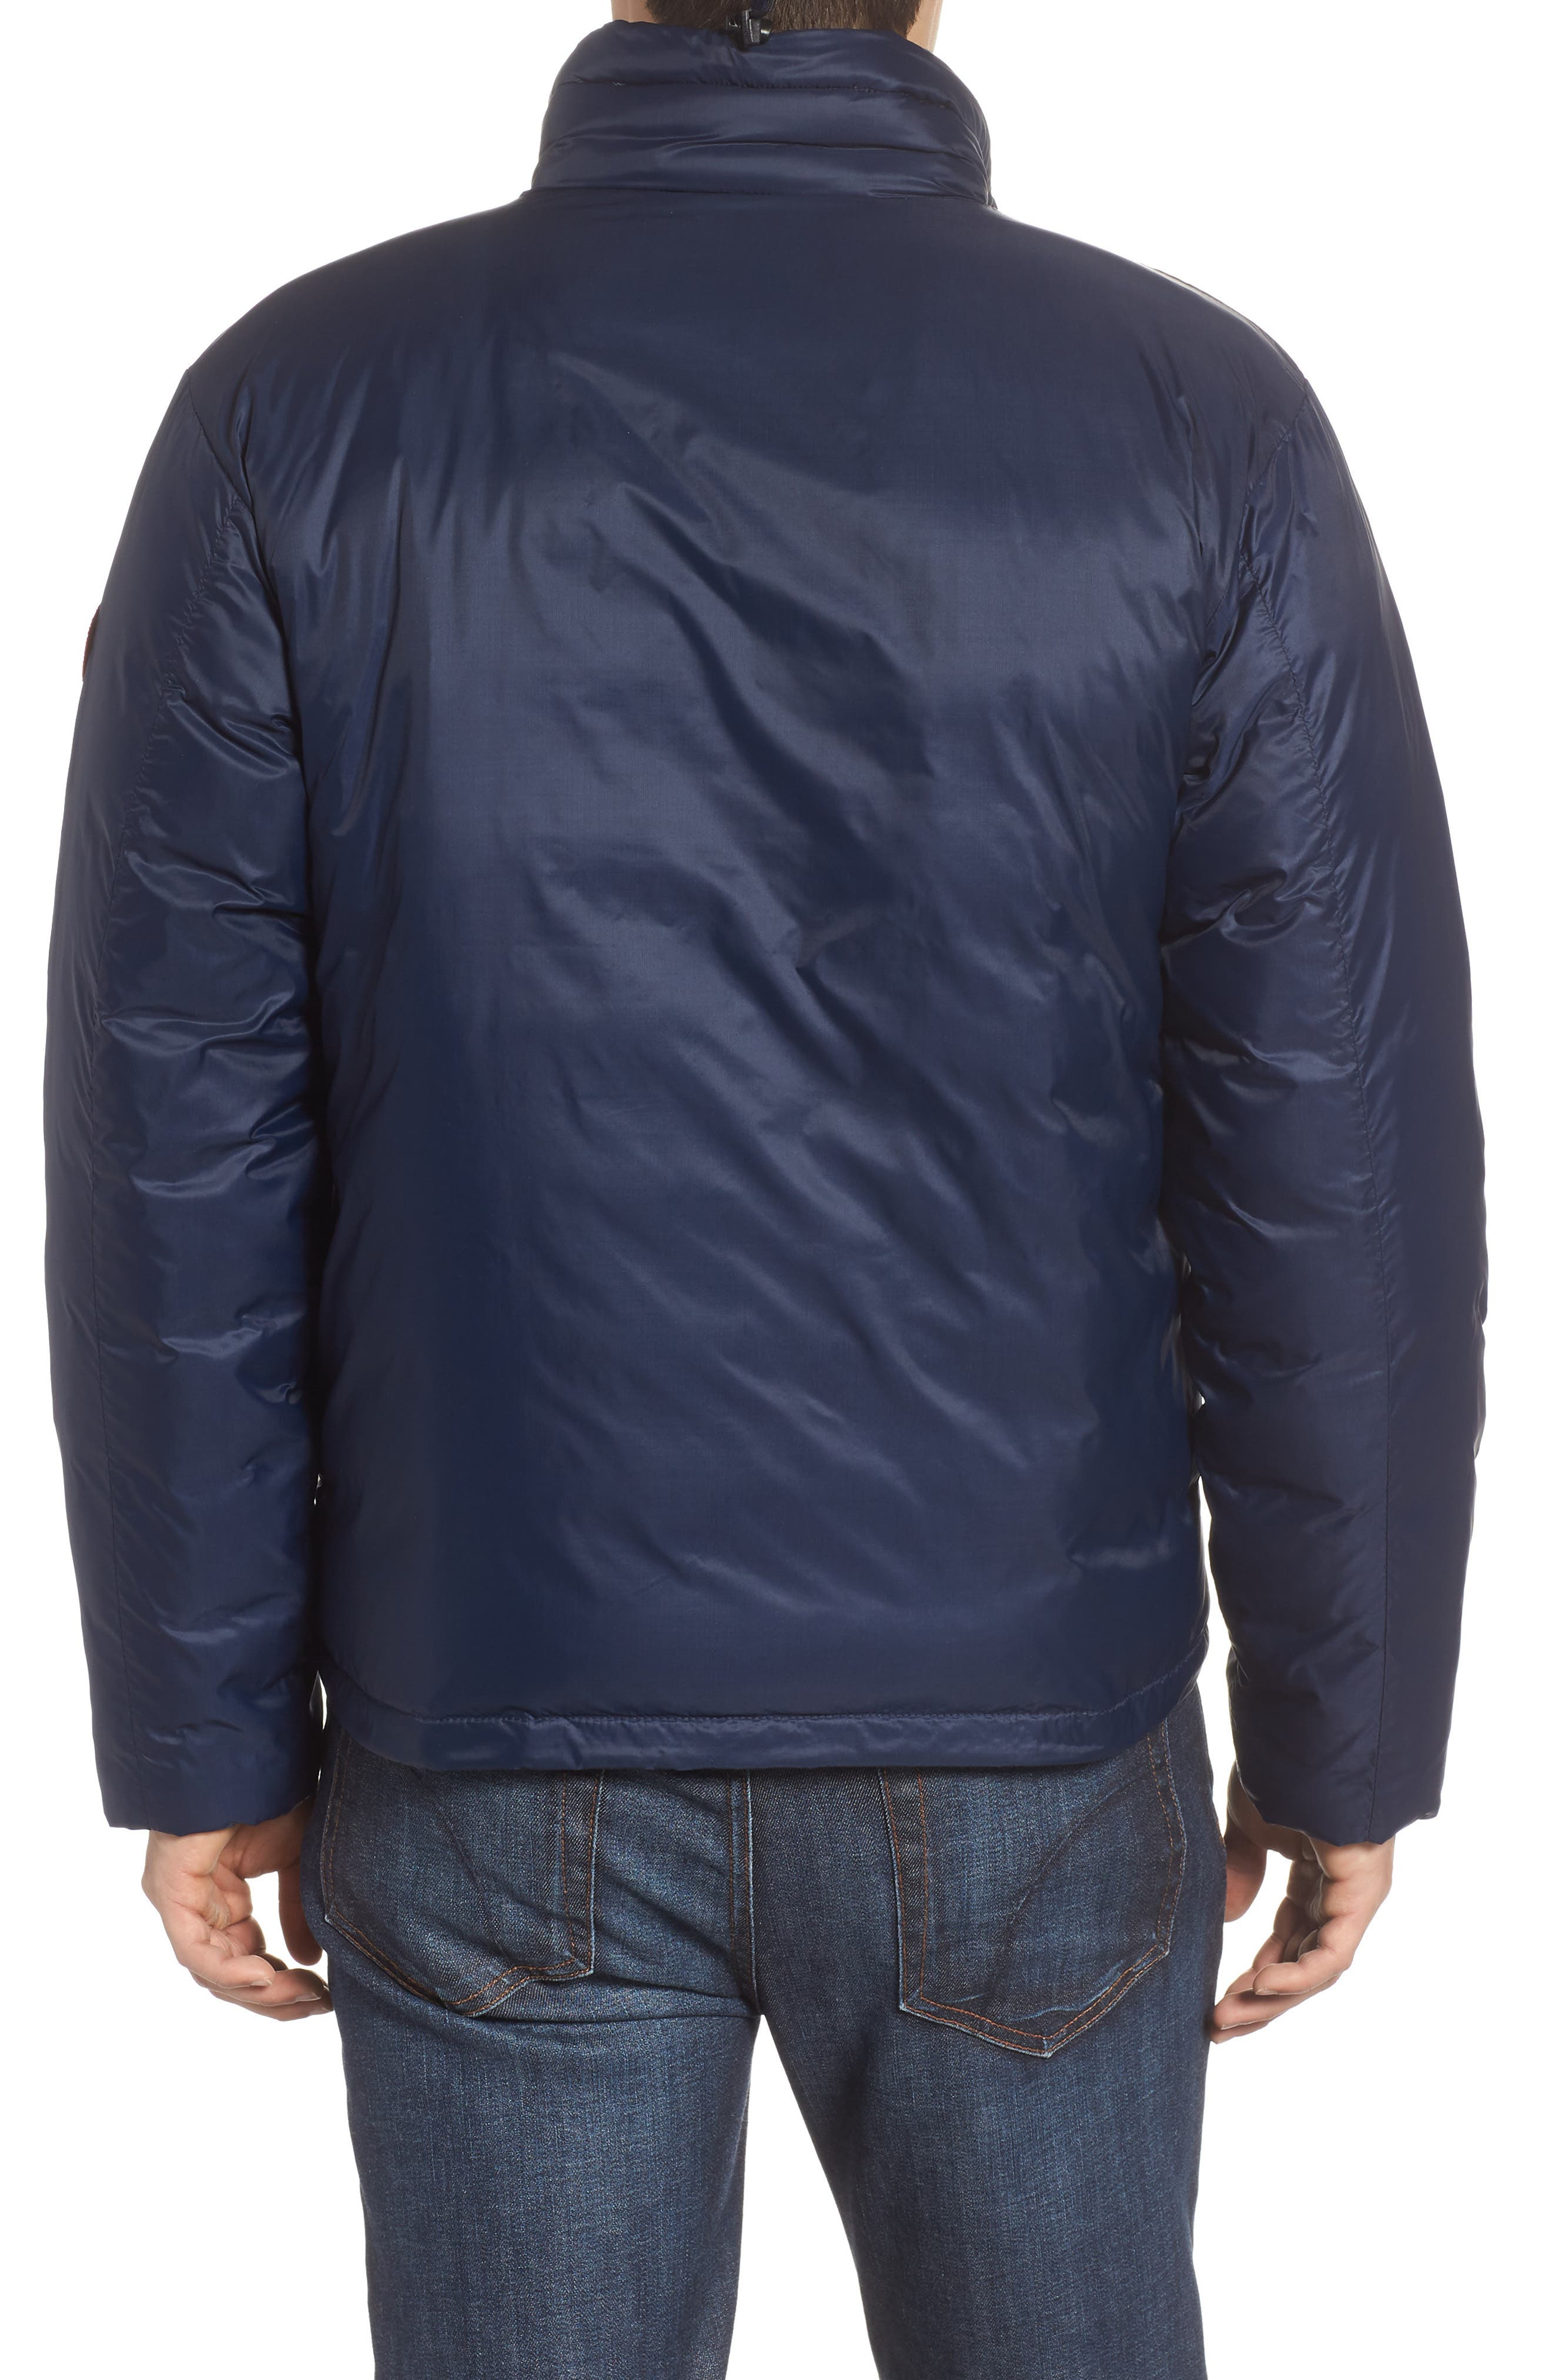 'Lodge' Slim Fit Packable Windproof 750 Down Fill Jacket,                             Alternate thumbnail 2, color,                             ADMIRAL BLUE/ BLACK